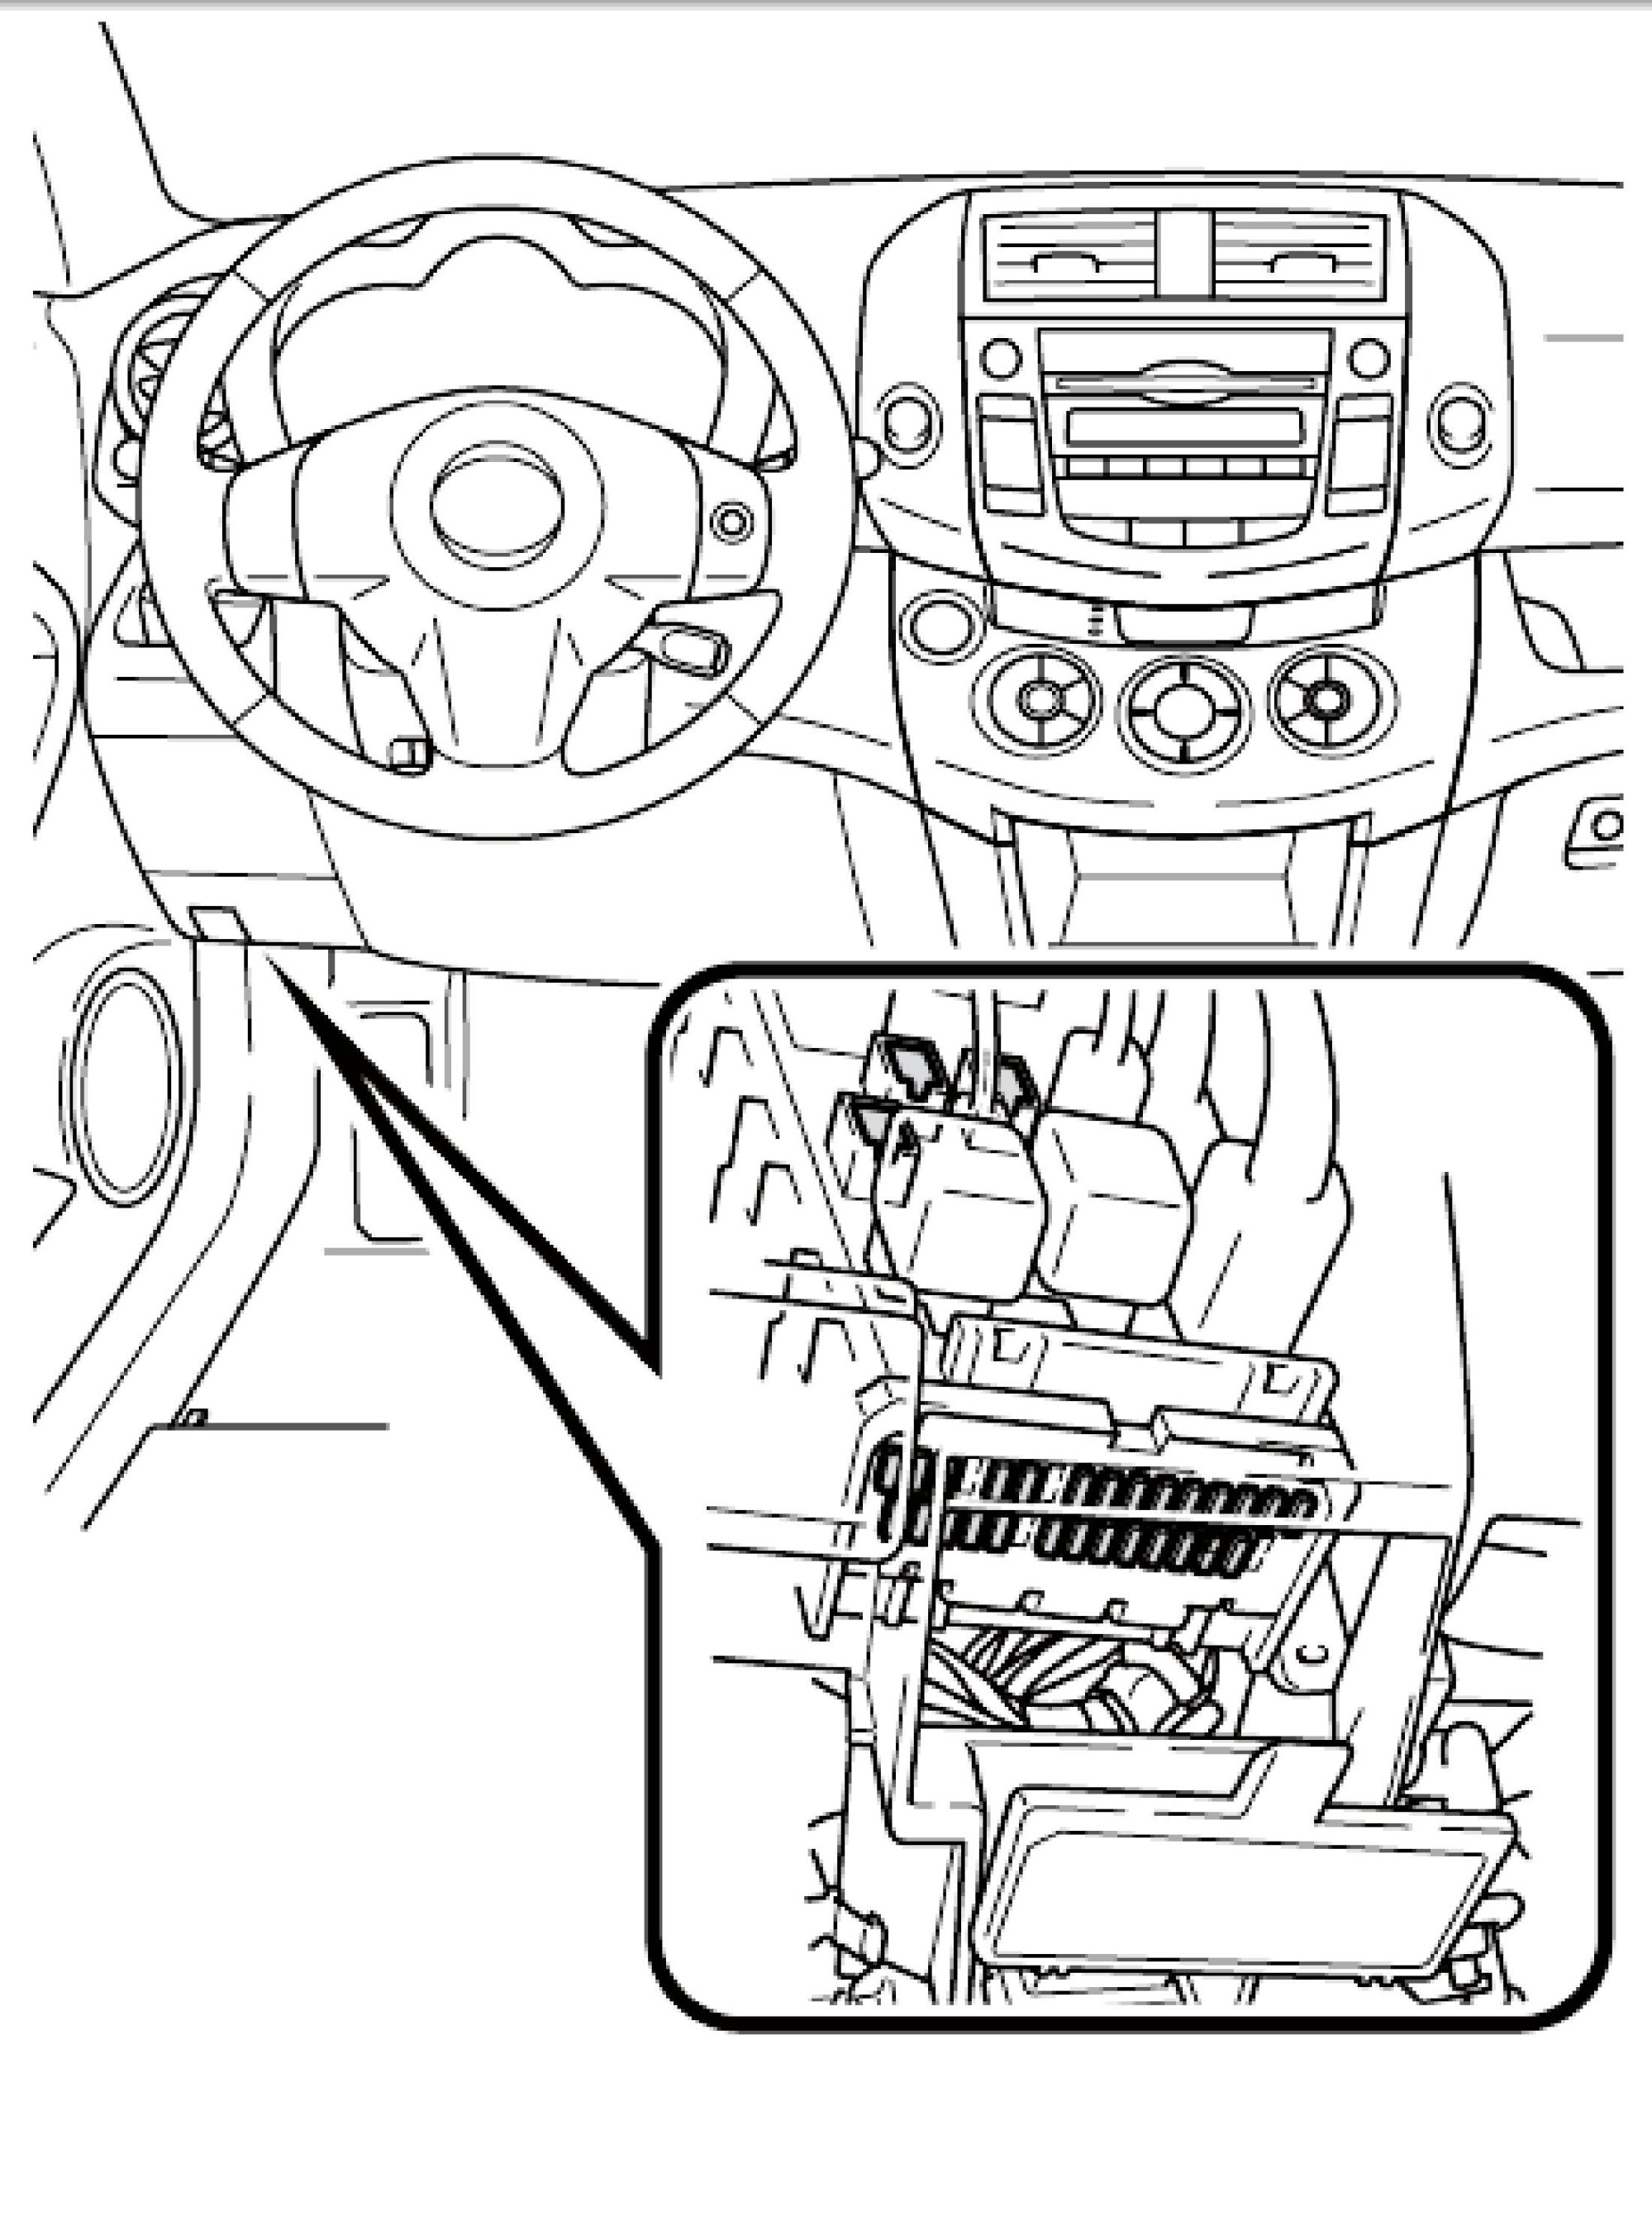 hight resolution of 2006 kenworth t600 wiring diagram wiring diagram databasetoyota fuse box diagram hiace best wiring library 2003